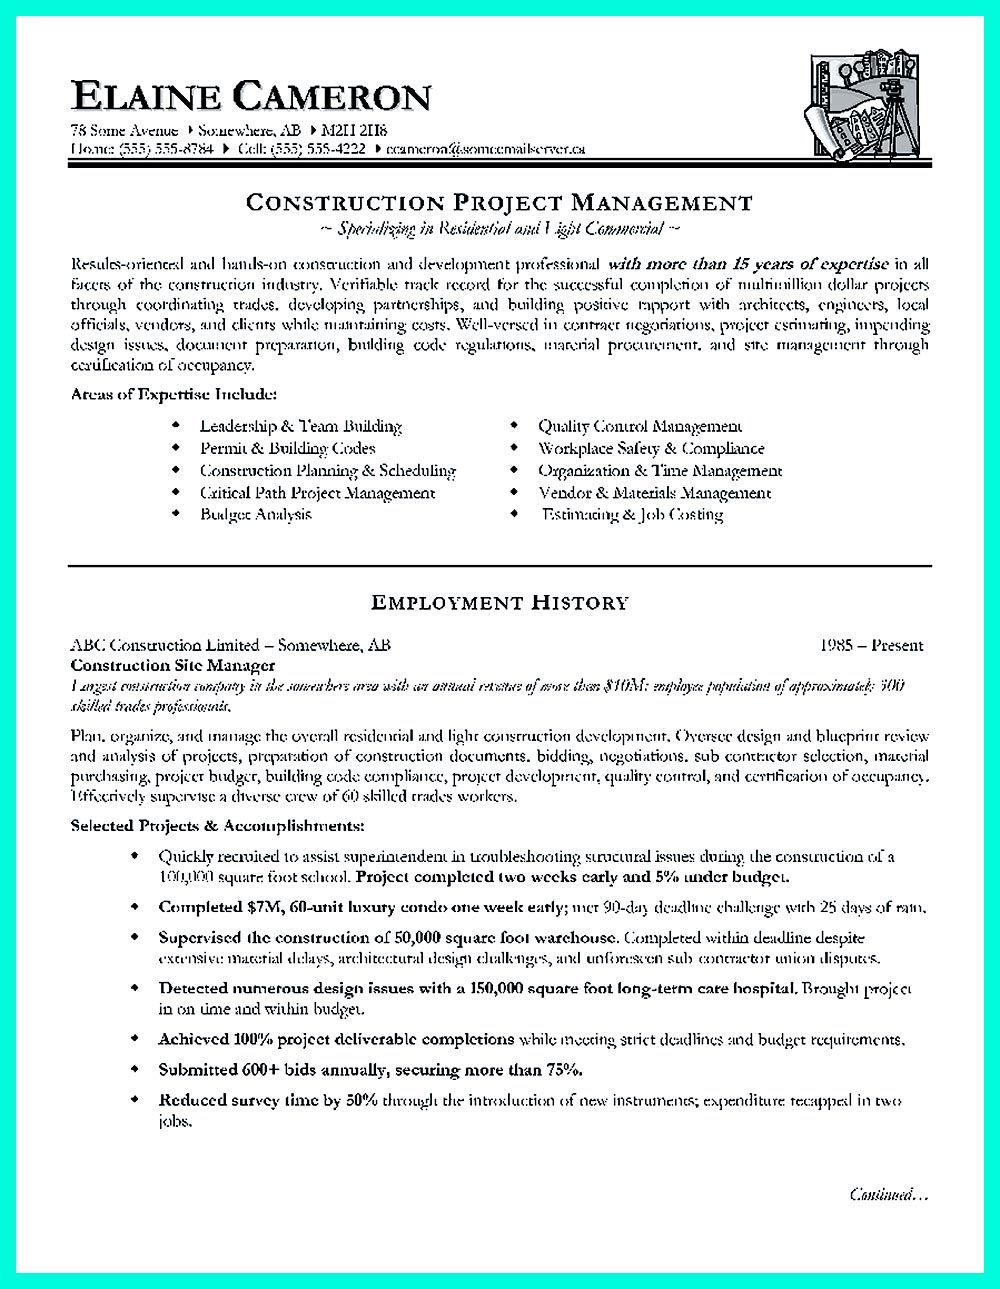 construction project manager resume for experienced one must be construction project manager resume for experienced one must be made professional profile education skills and abilities including employment h